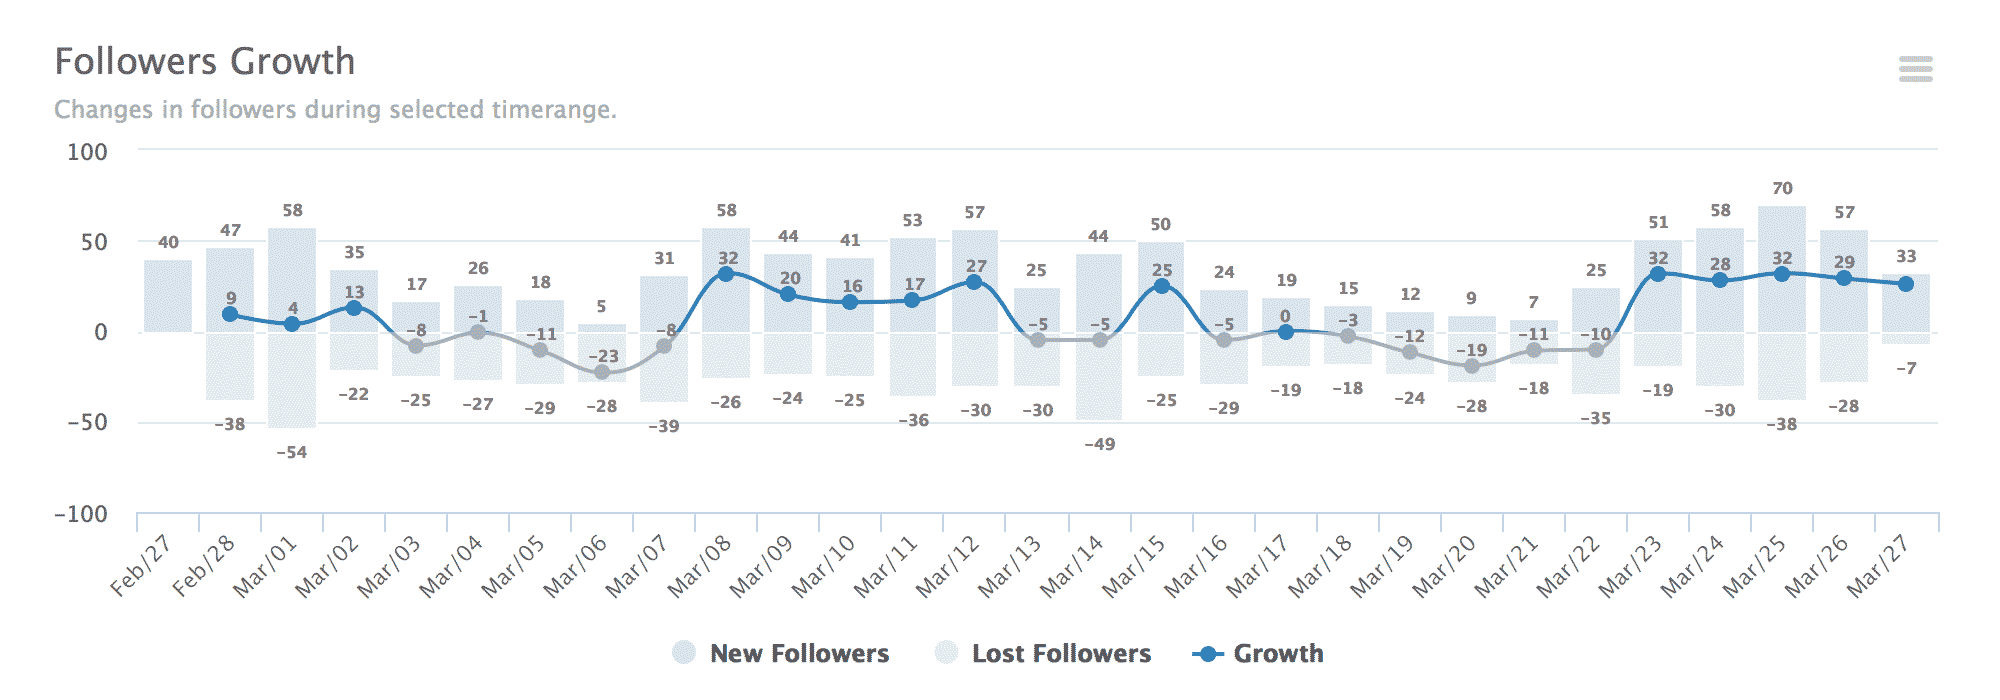 Followers Growth